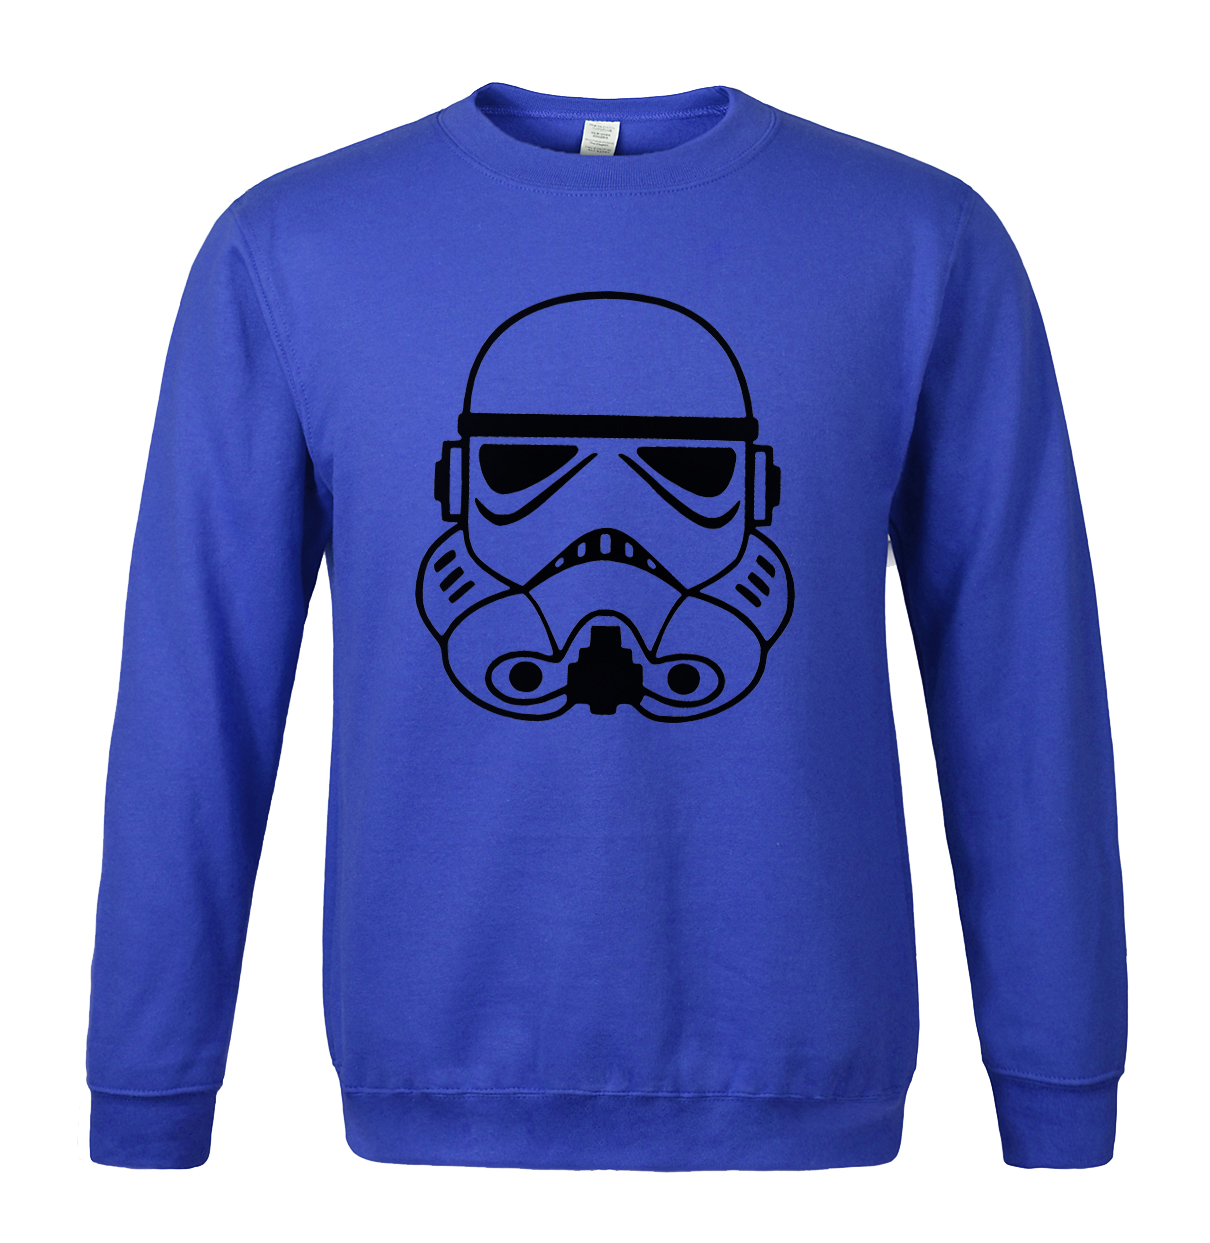 Sweatshirt 2019 spring winter hoody Yoda/Darth Vader pattern character marvel men's sportswear new hoodie hip hop harajuku